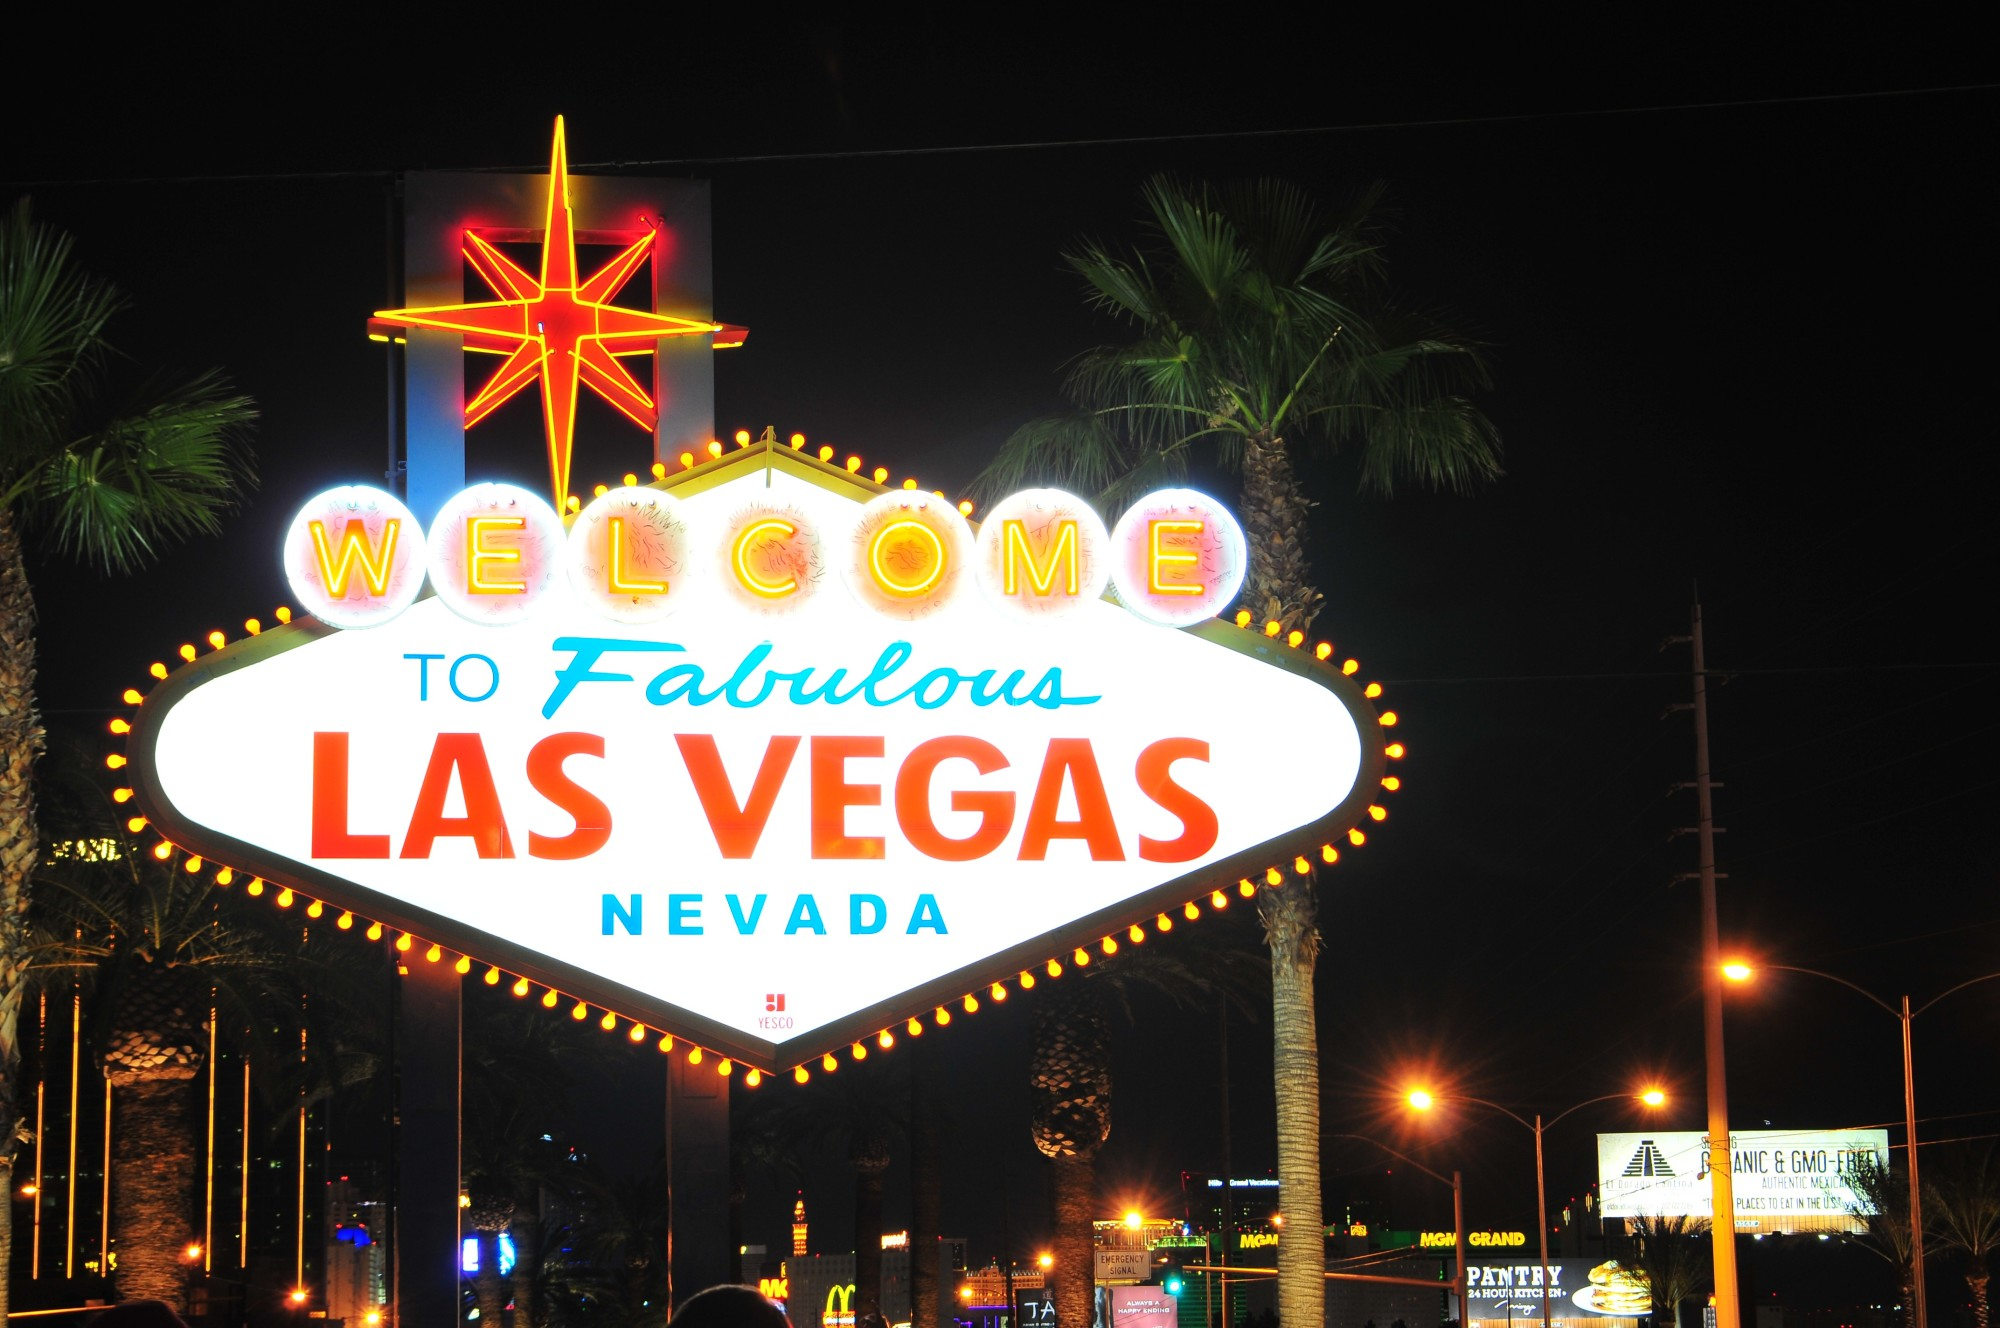 How to Buy a Home in Las Vegas [2021 Guide]